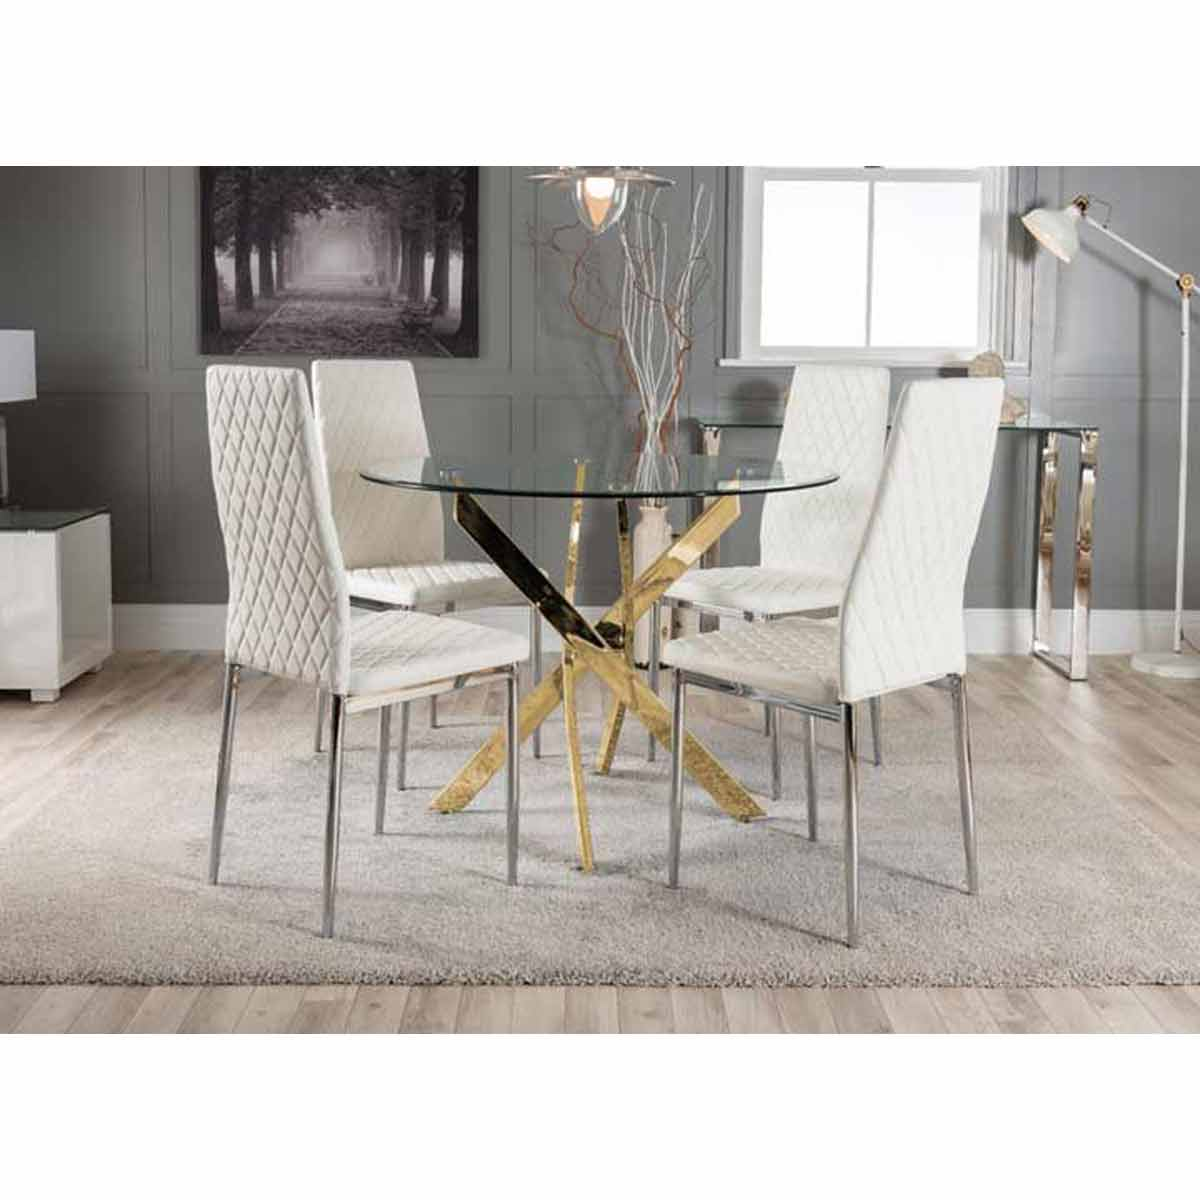 Furniture Box Novara Gold Metal Round Glass Dining Table And 4 White Milan Dining Chairs